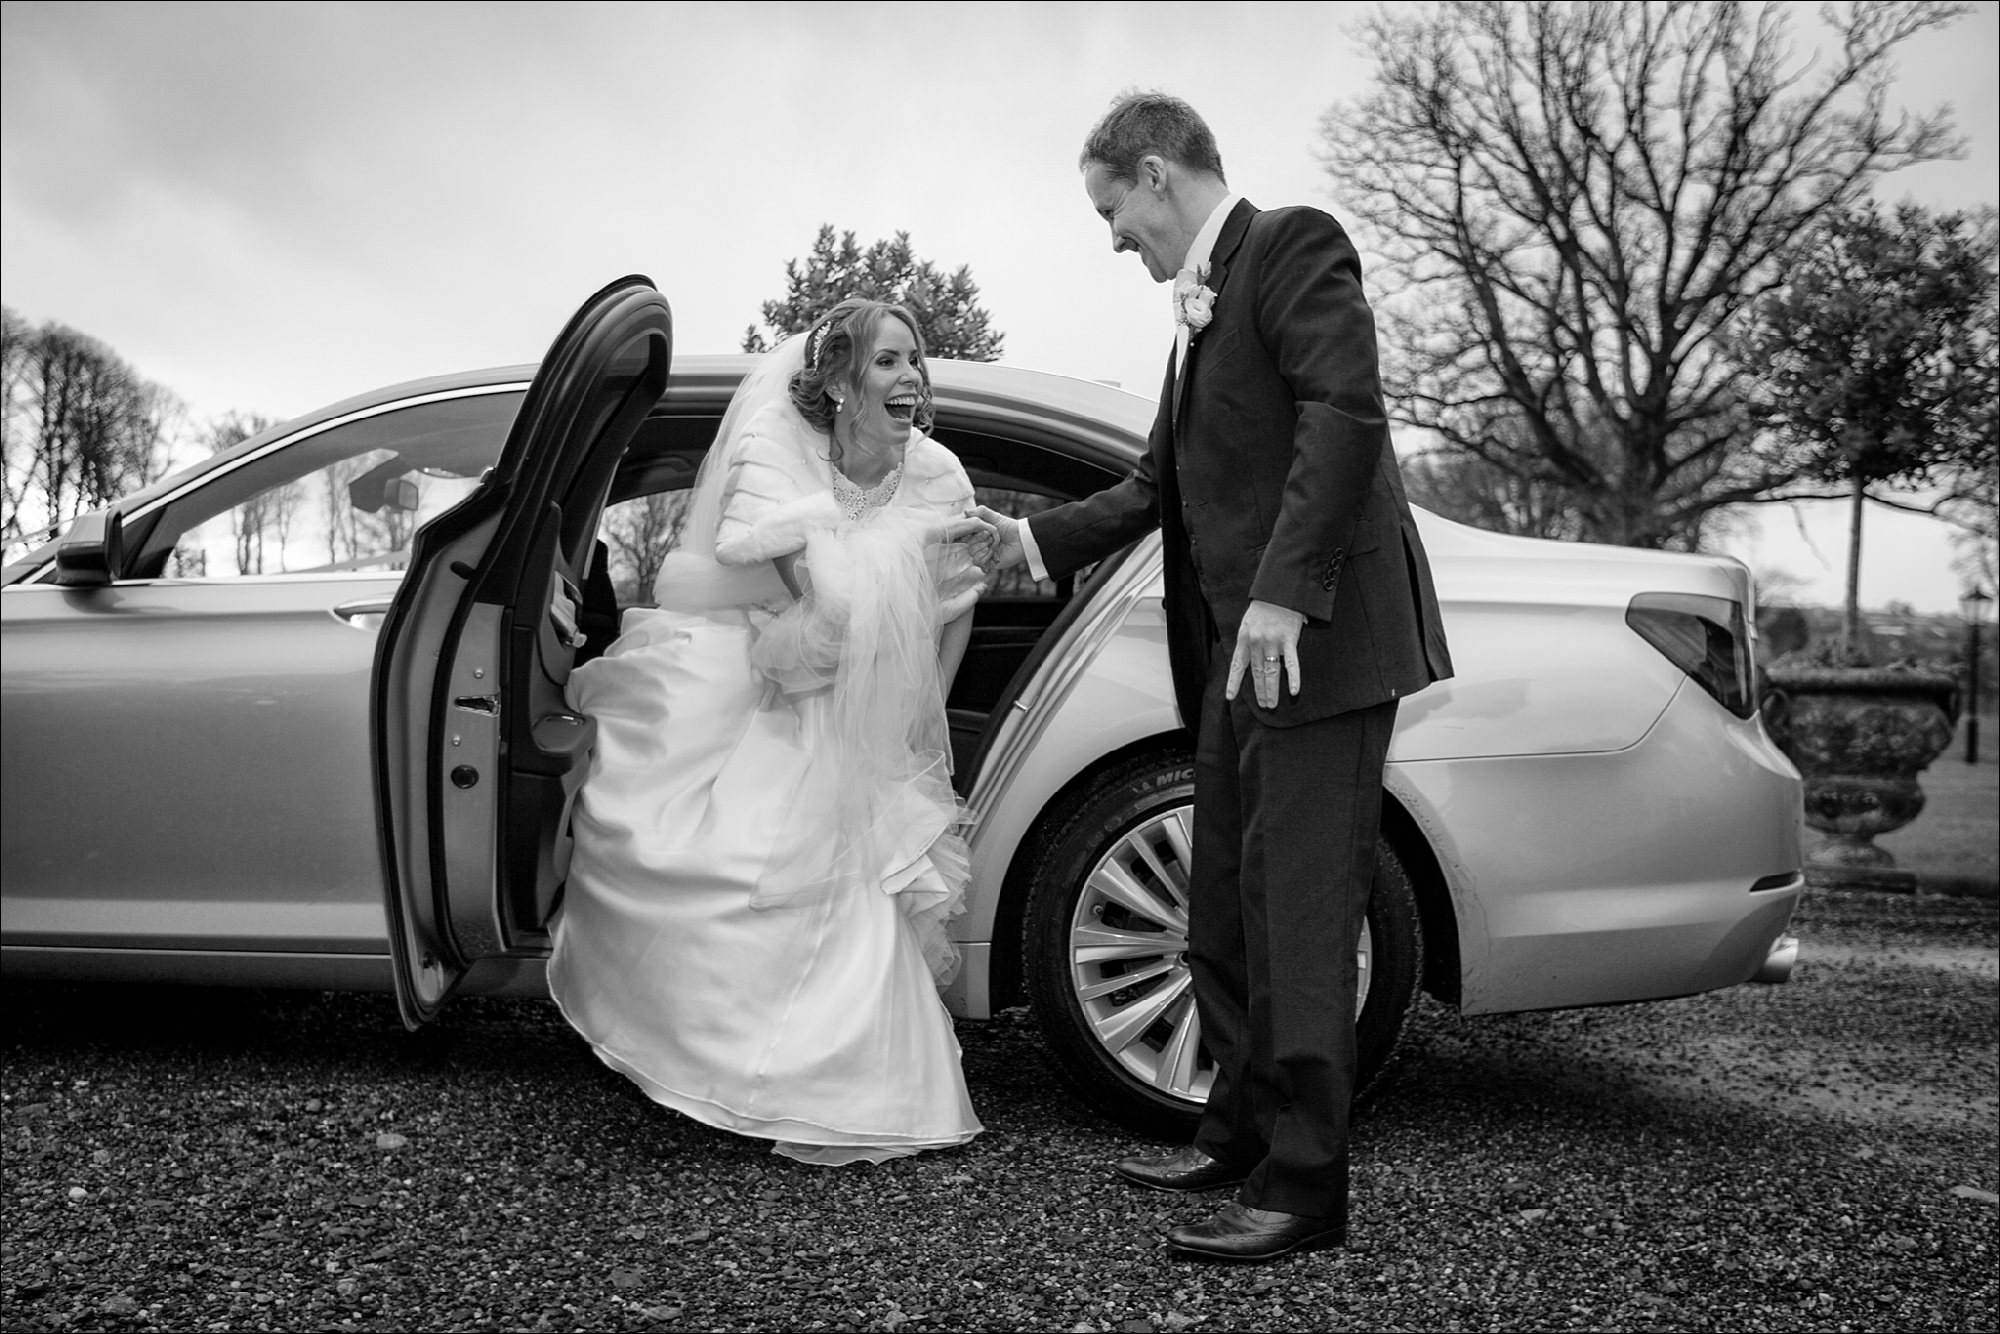 dublin wedding photographer david duignan photography tankardstown weddings slane rathfeigh church ireland 0029